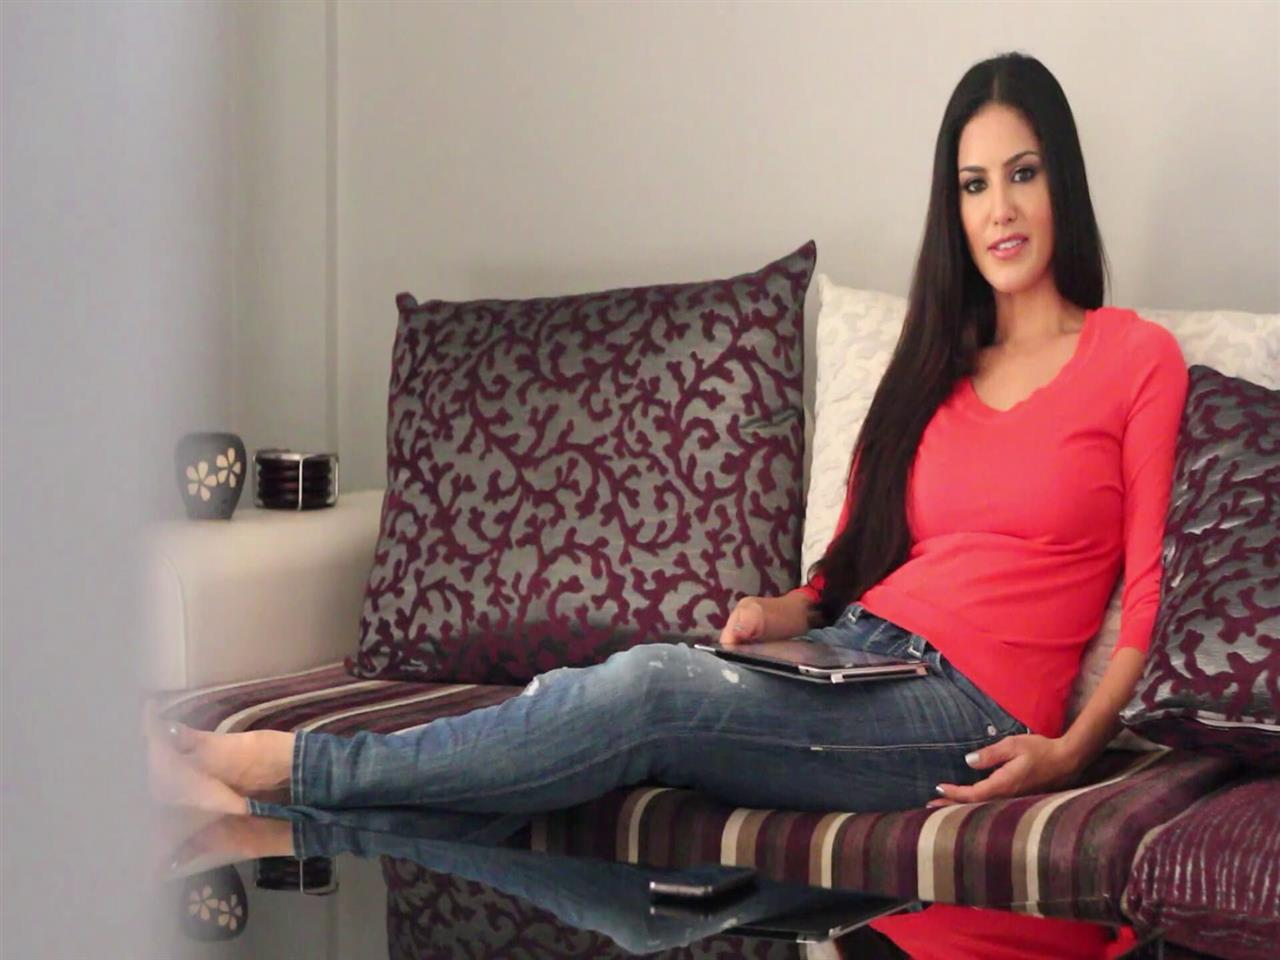 1280x960 Sunny Leone in Home HD Wallpaper